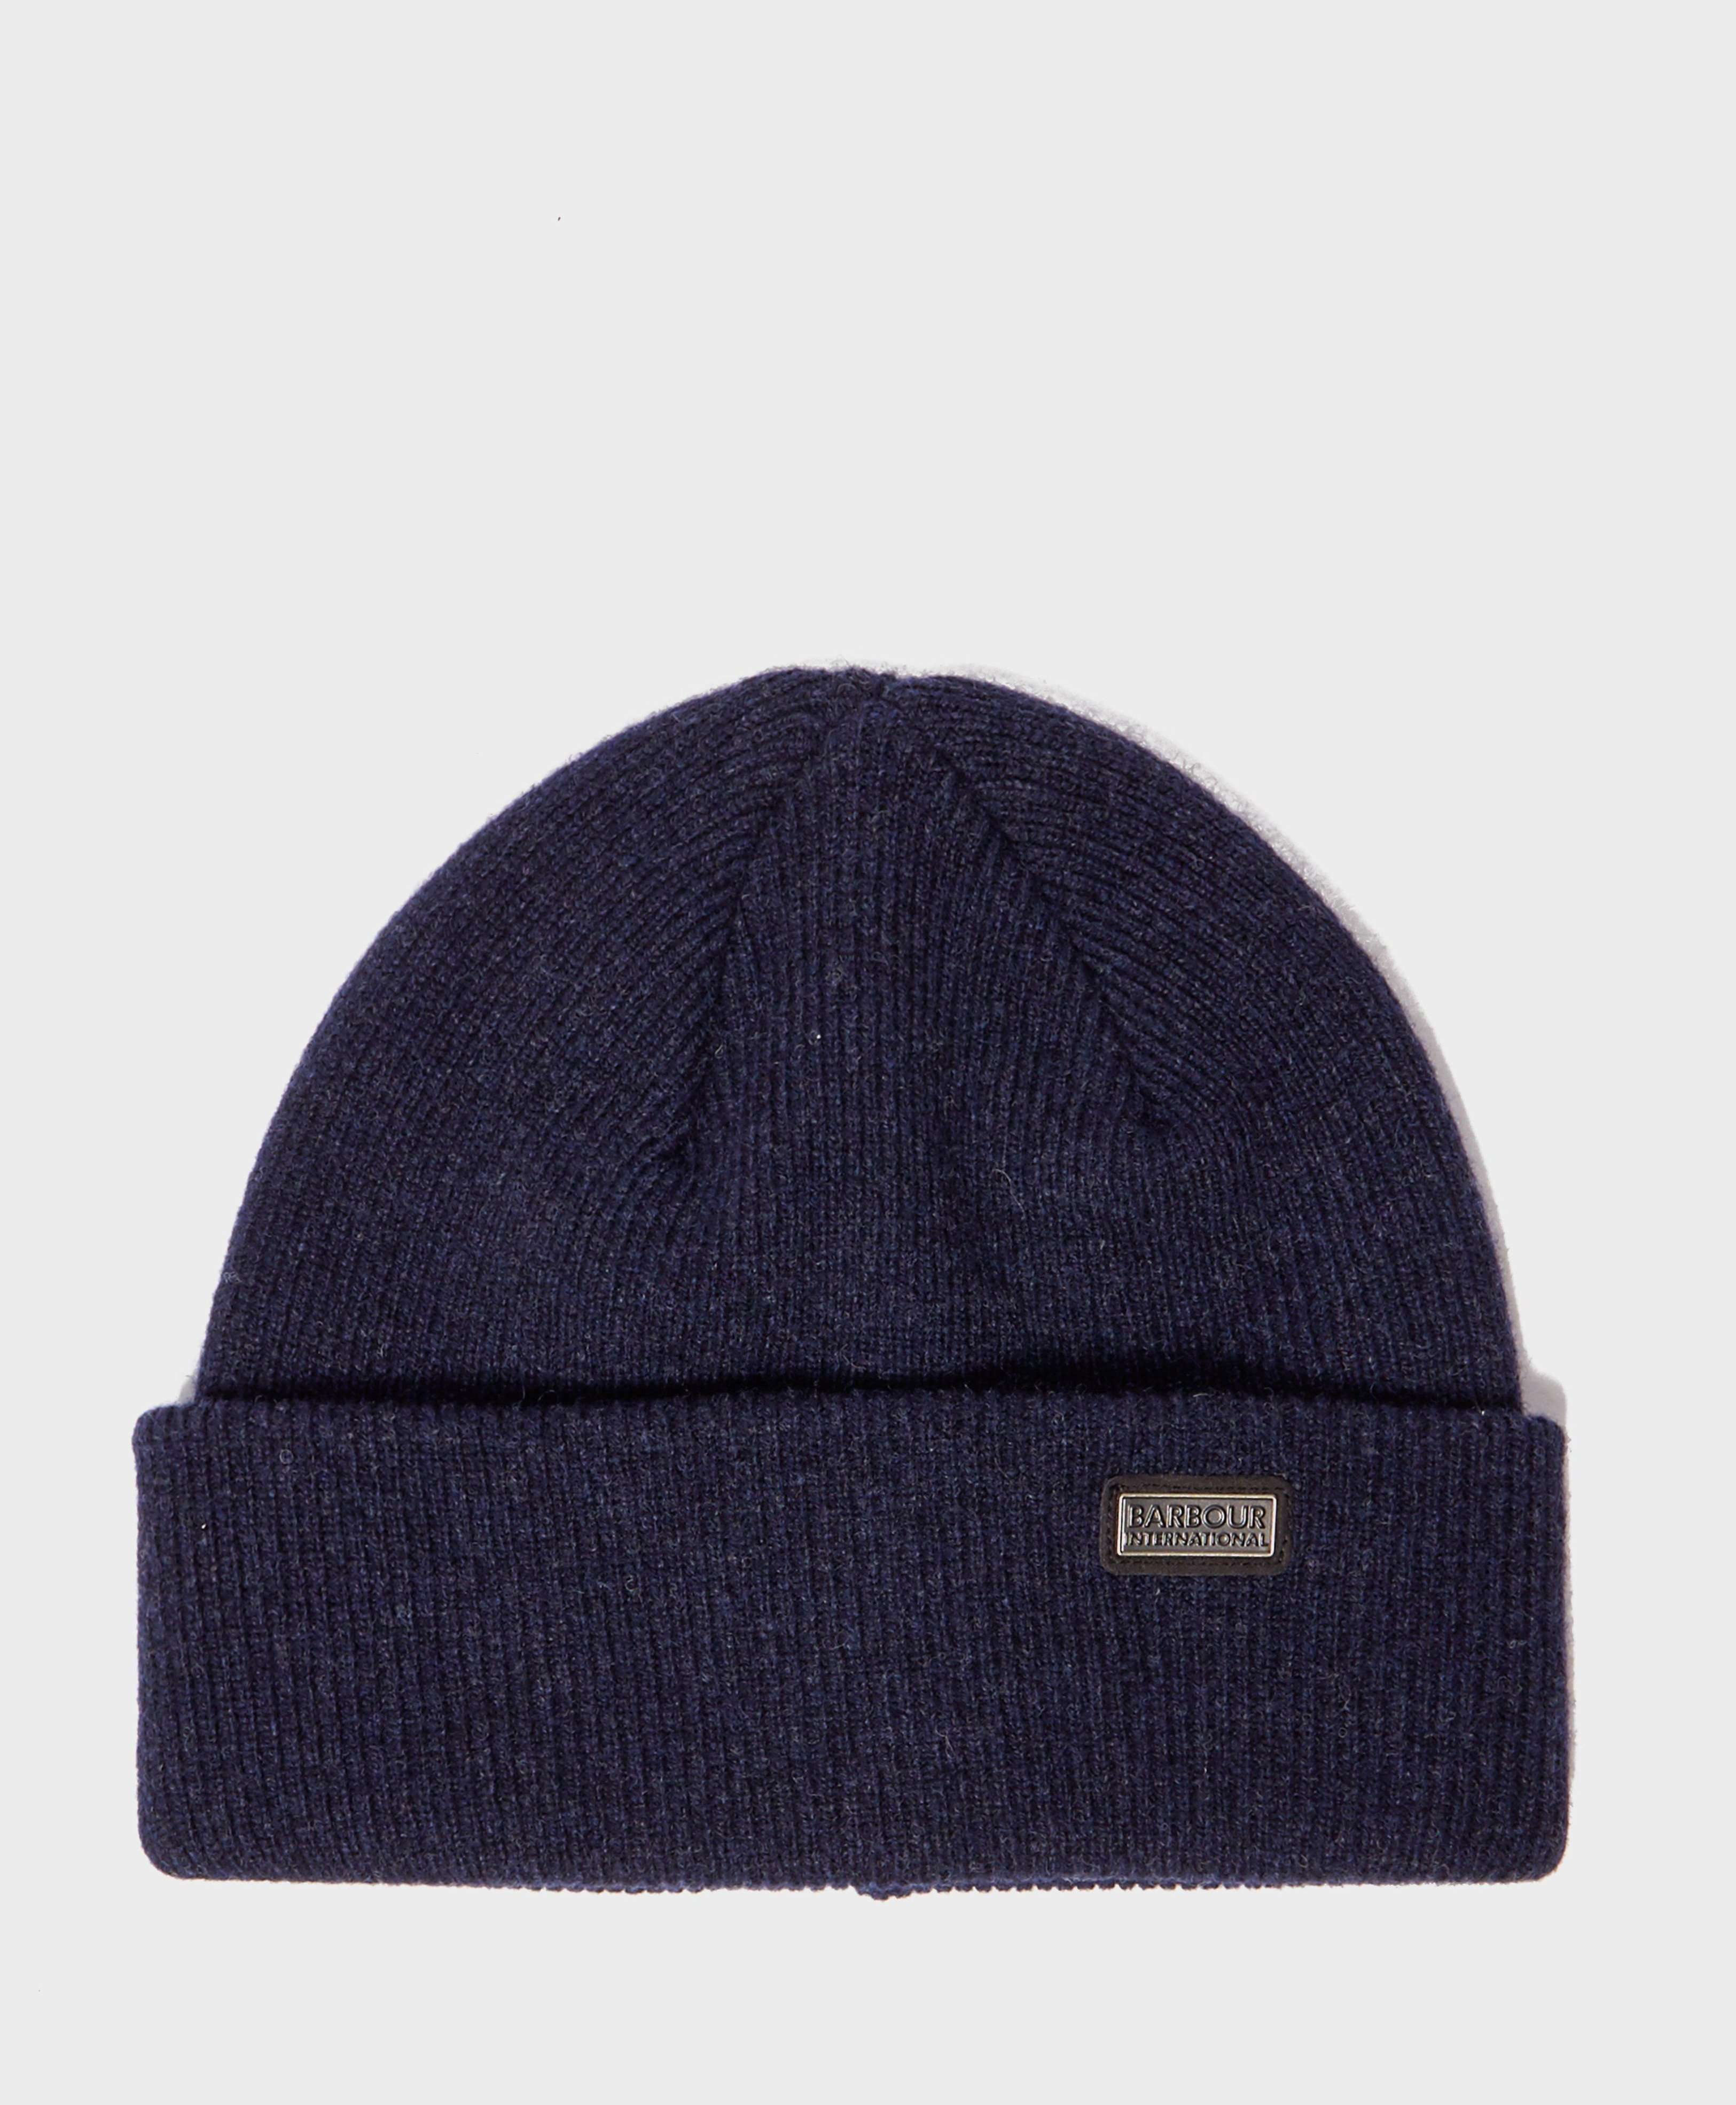 Barbour International Watch Knitted Beanie